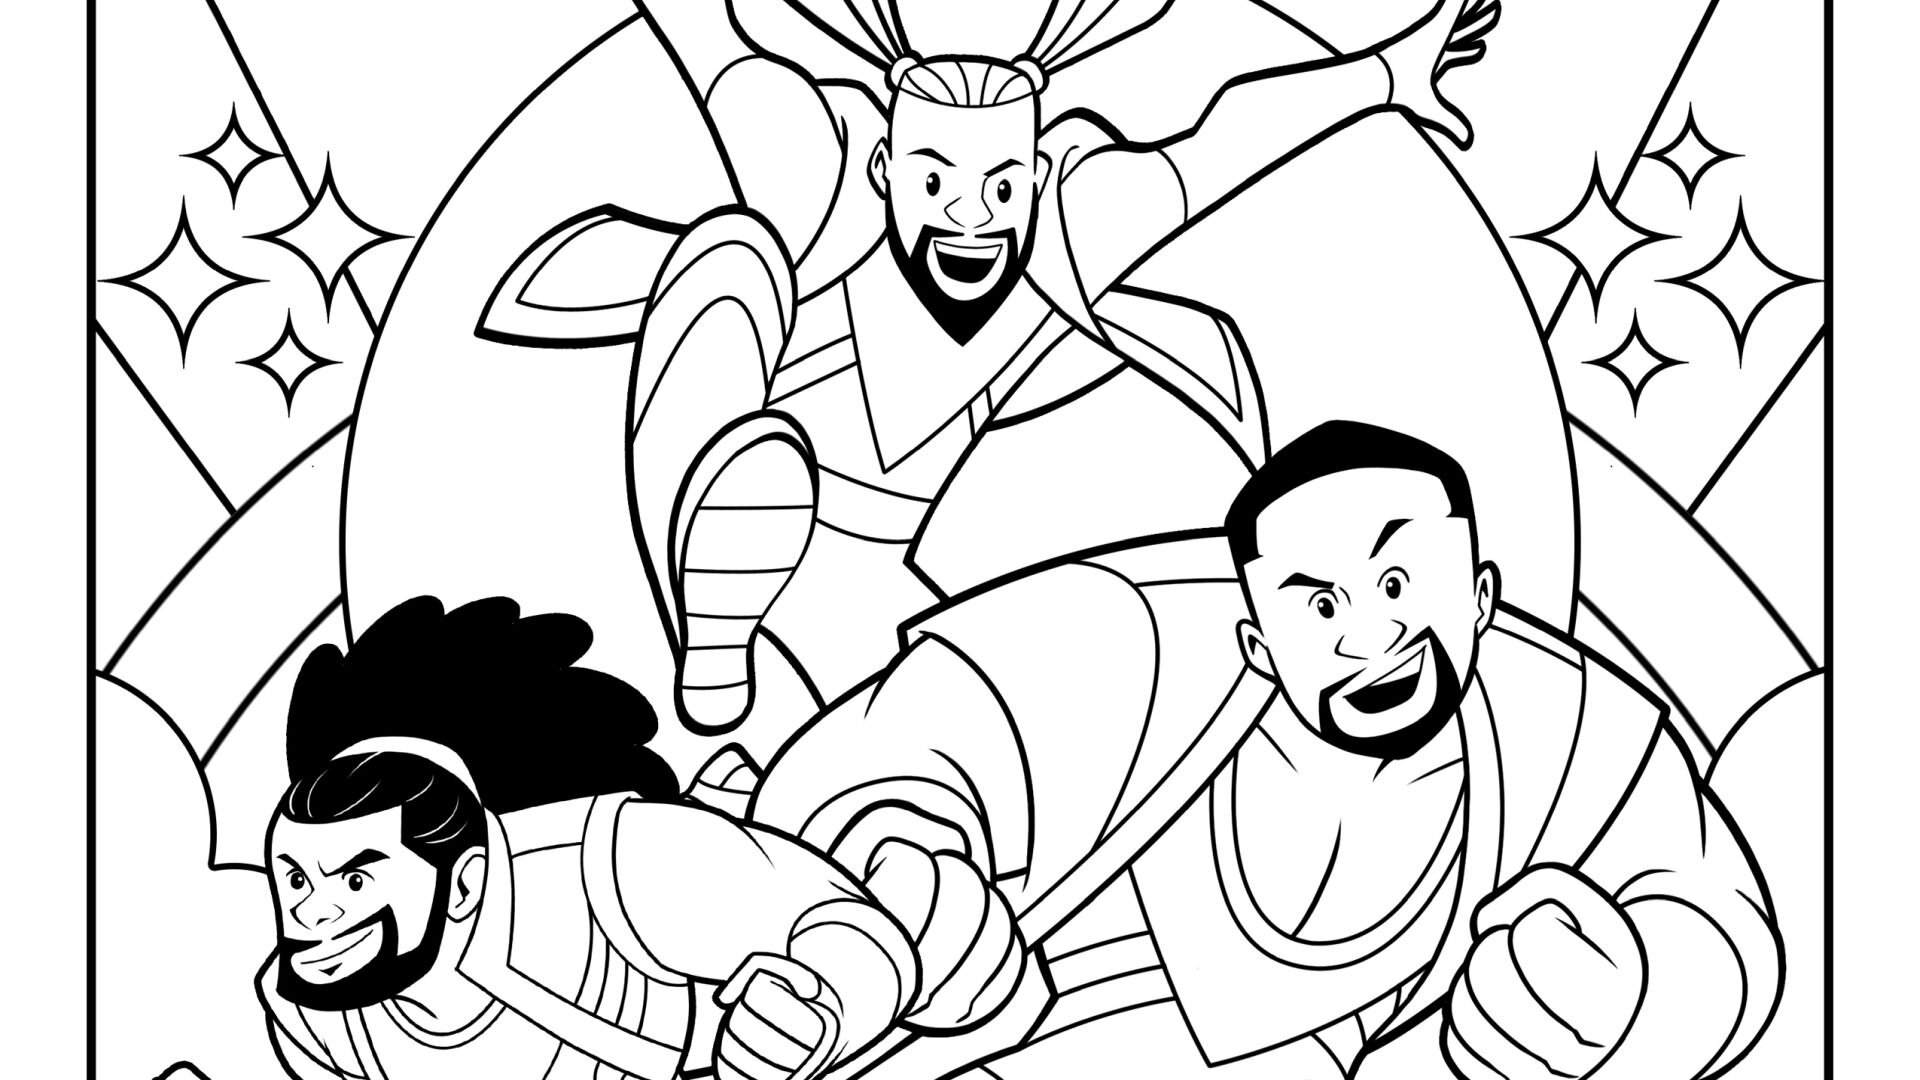 Get Your Wwe Fix With These Free The New Day Coloring Pages Geektyrant